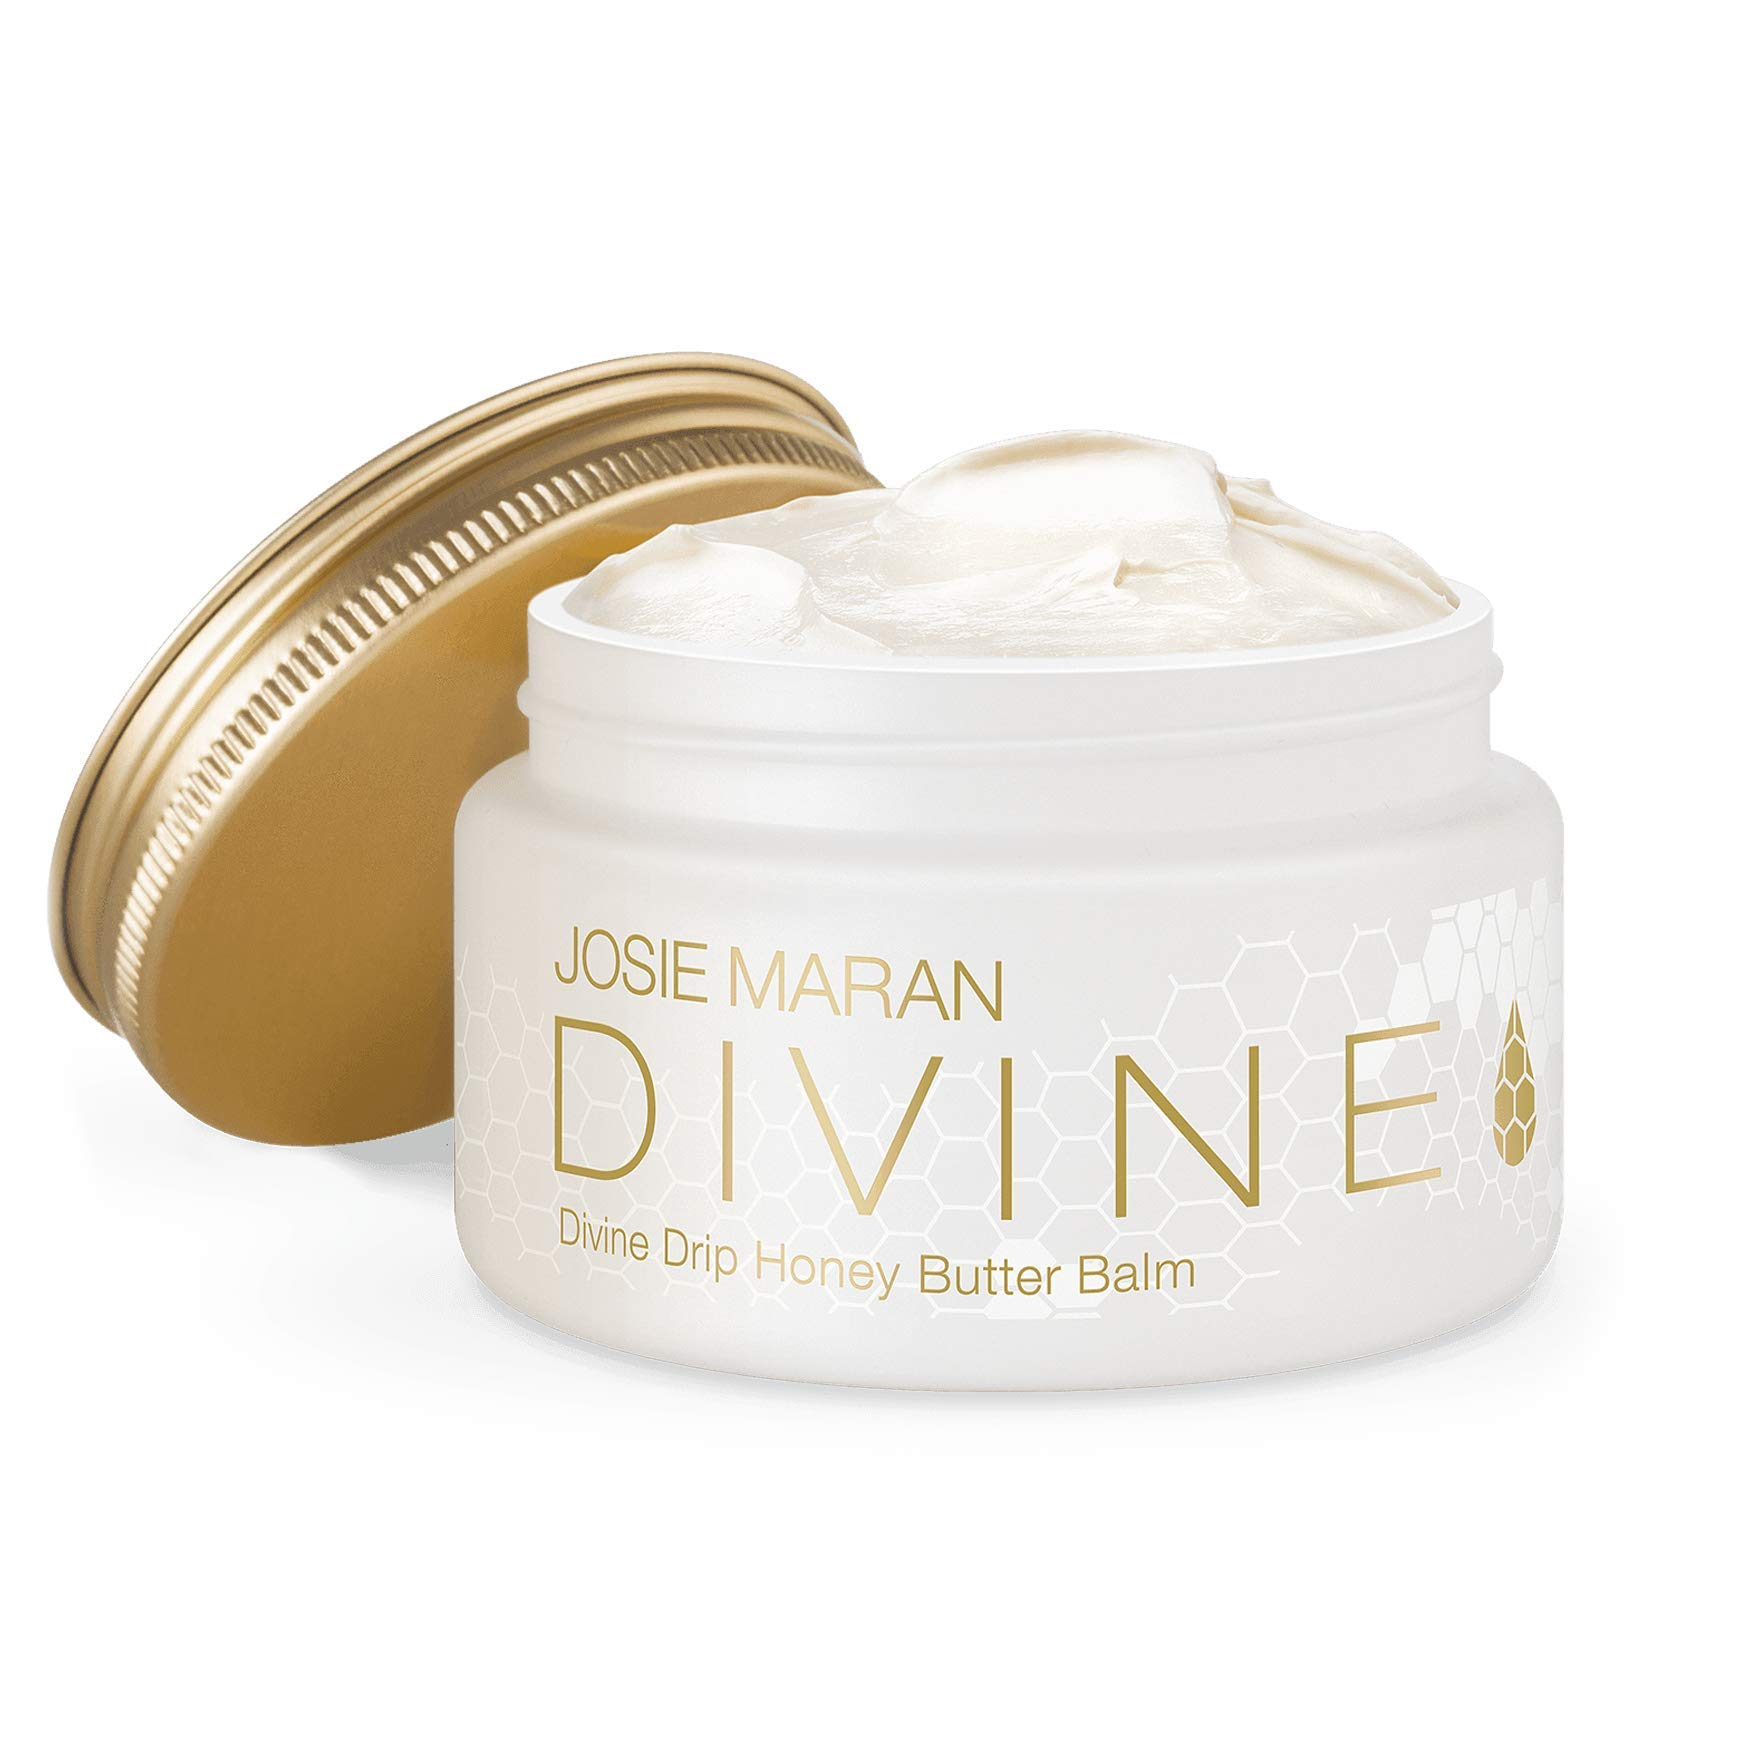 Josie Maran Divine Drip Honey Butter Balm - Seal in Moisture With a Protective Barrier From Whipped Argan Oil and Honey (142g/5oz) - Pure Honey